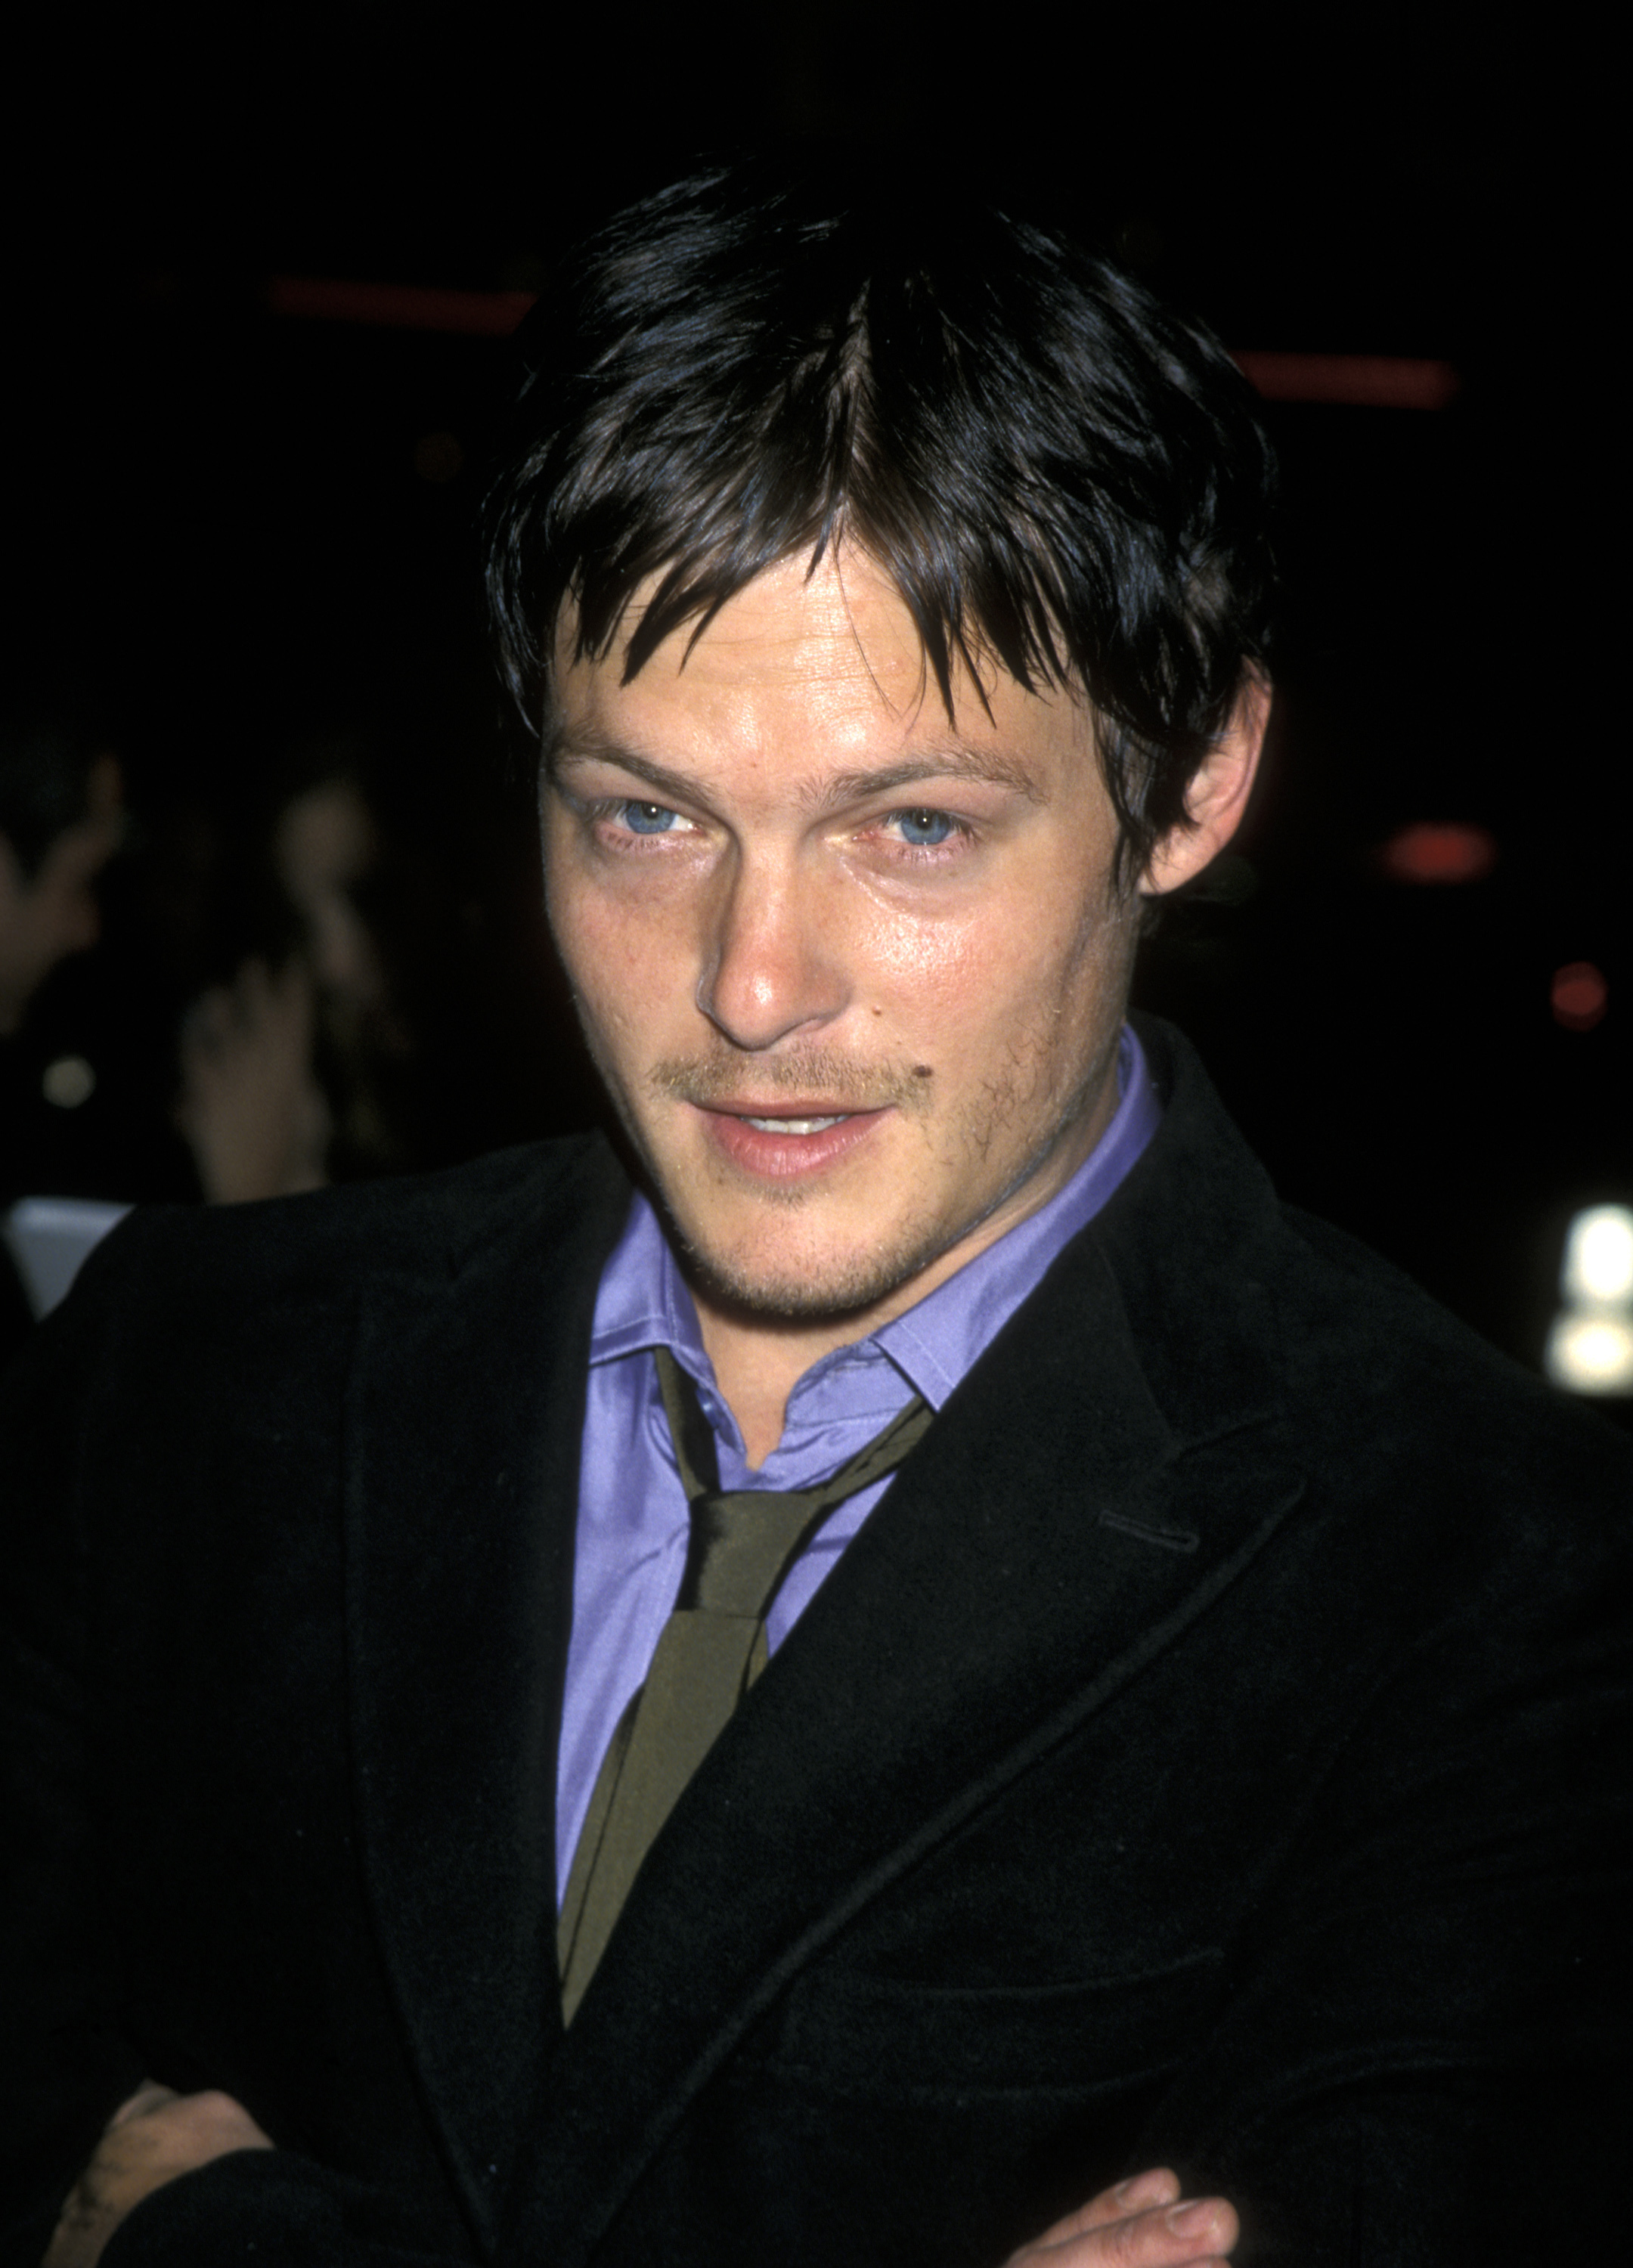 These Old Photos Of Norman Reedus Without The Hair Are